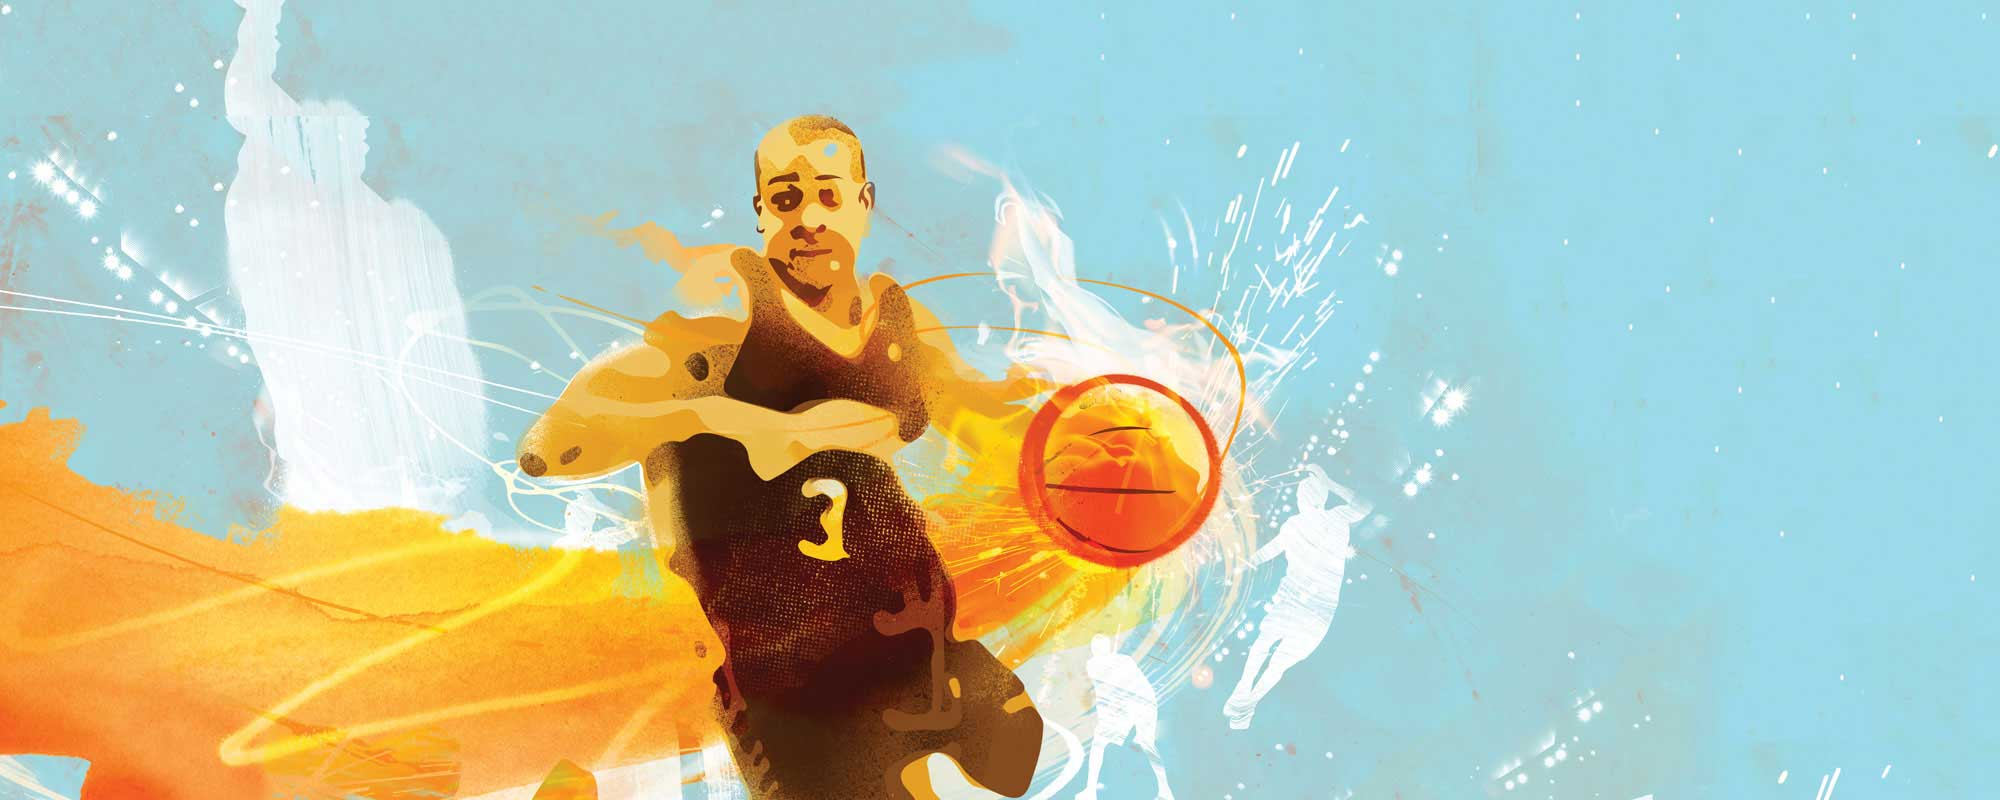 Illustration of C.J. McCollum